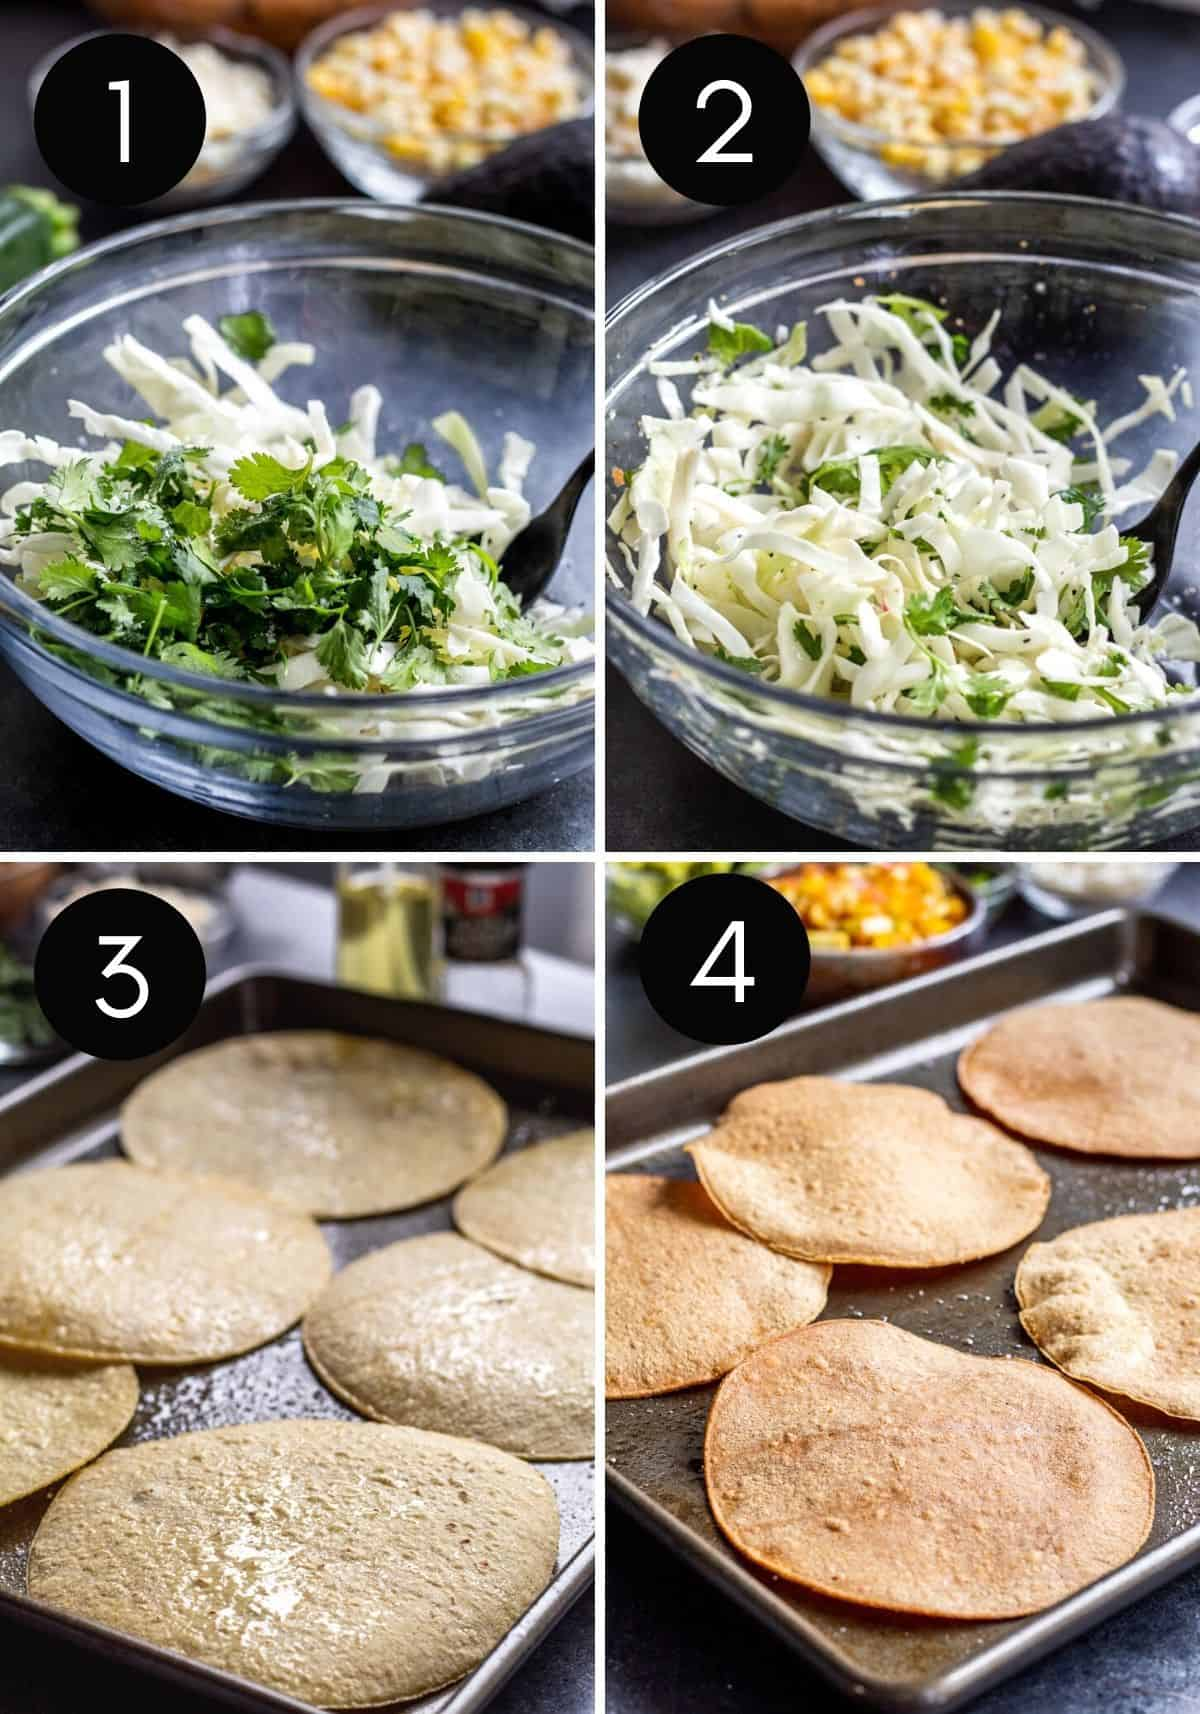 Four prep images with numbers showing slaw and tostadas being made.